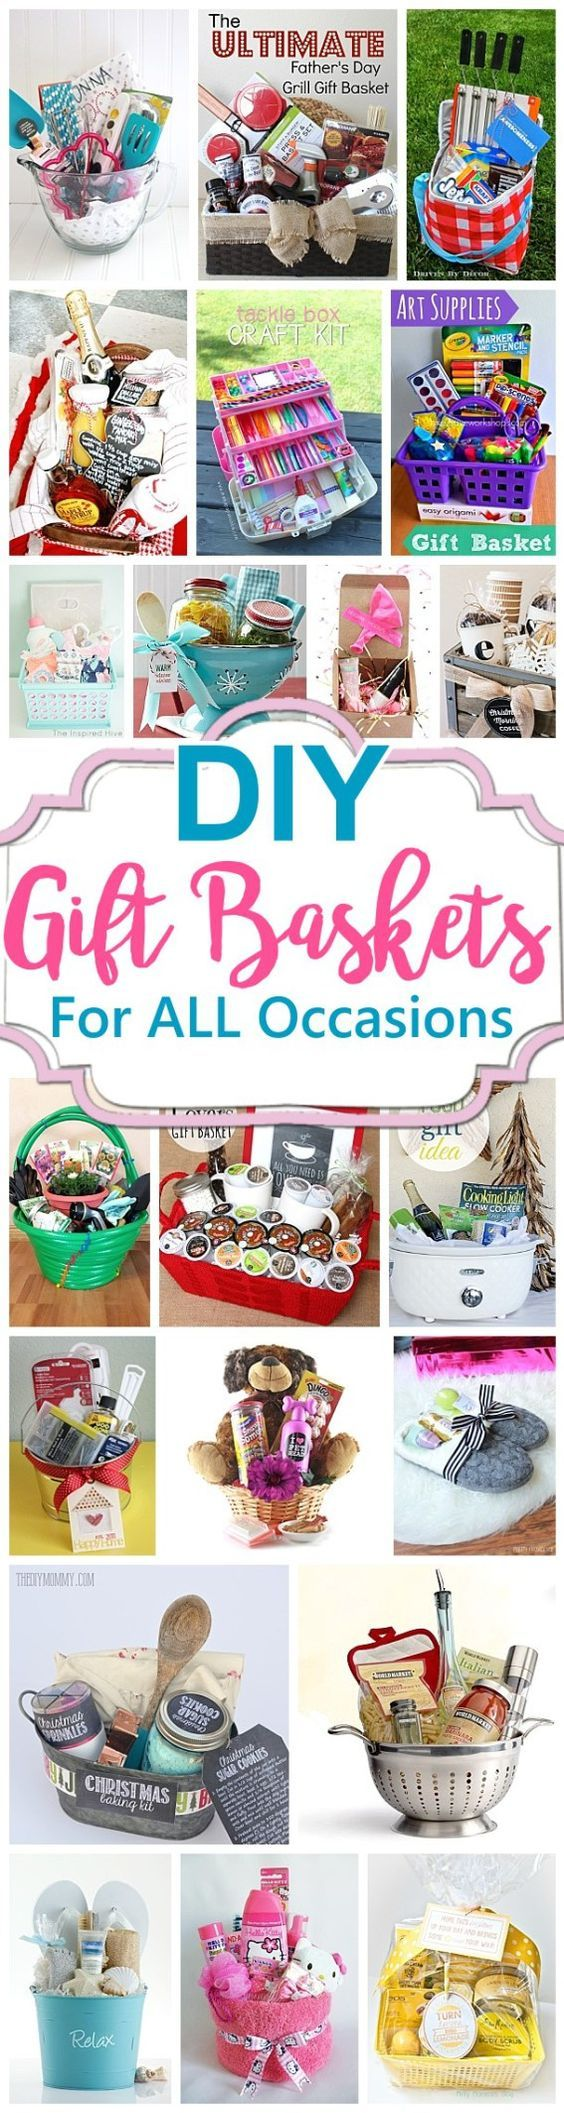 25 best ideas about gifts on pinterest girlfriends Do it yourself christmas gifts